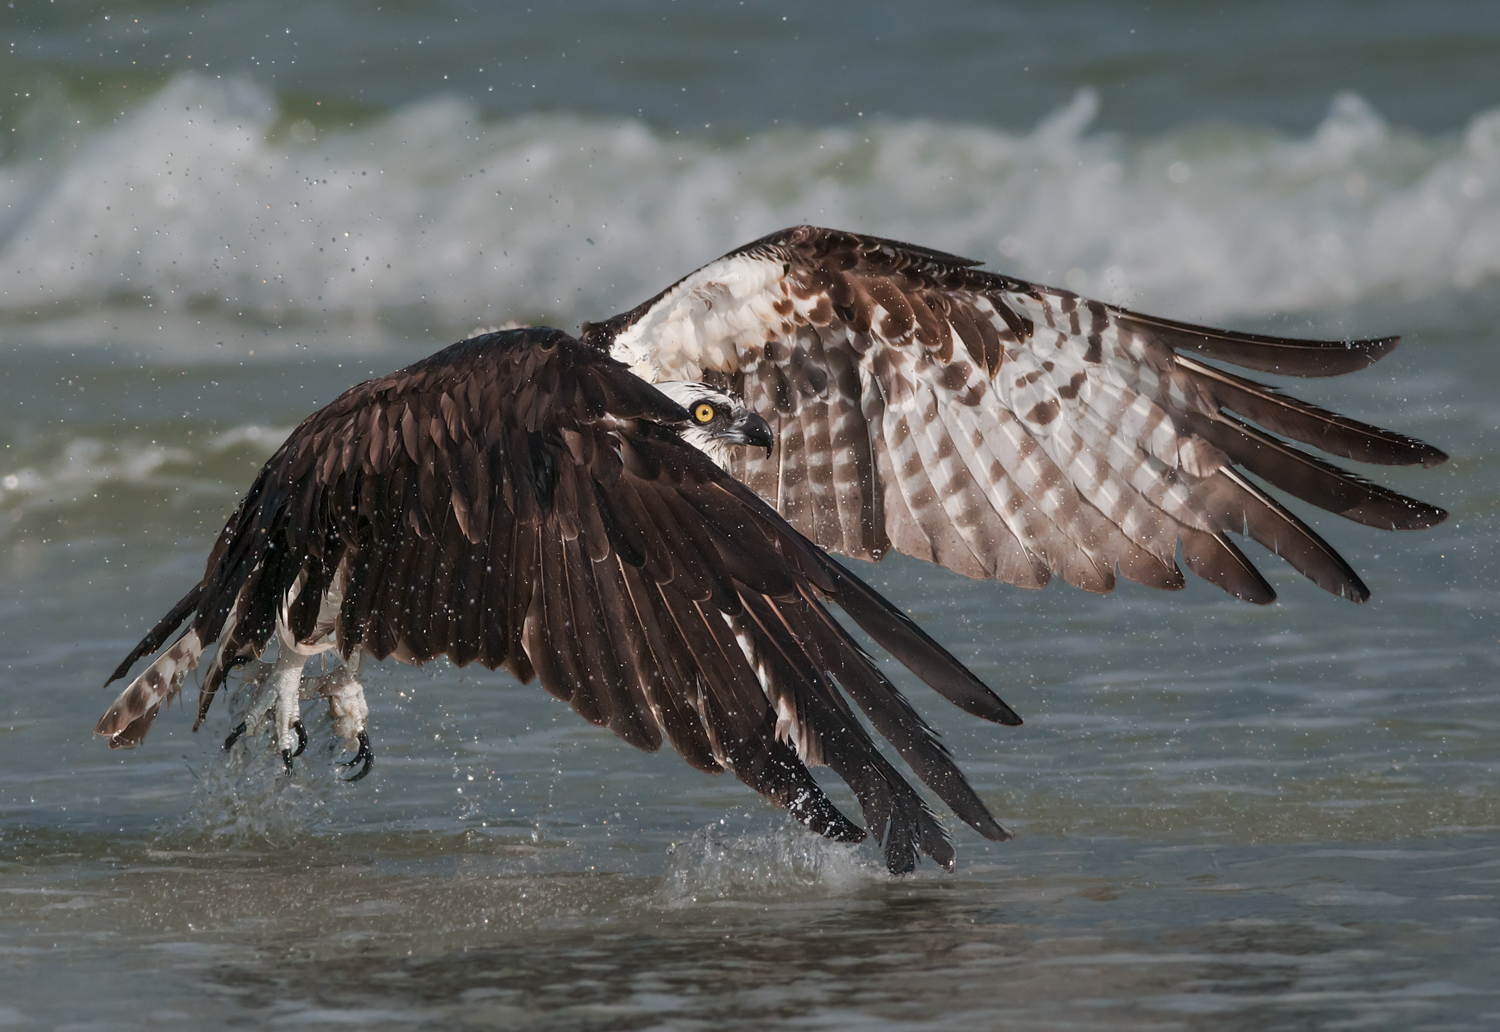 Osprey, Sanibel Island (FL), Feb. 2013